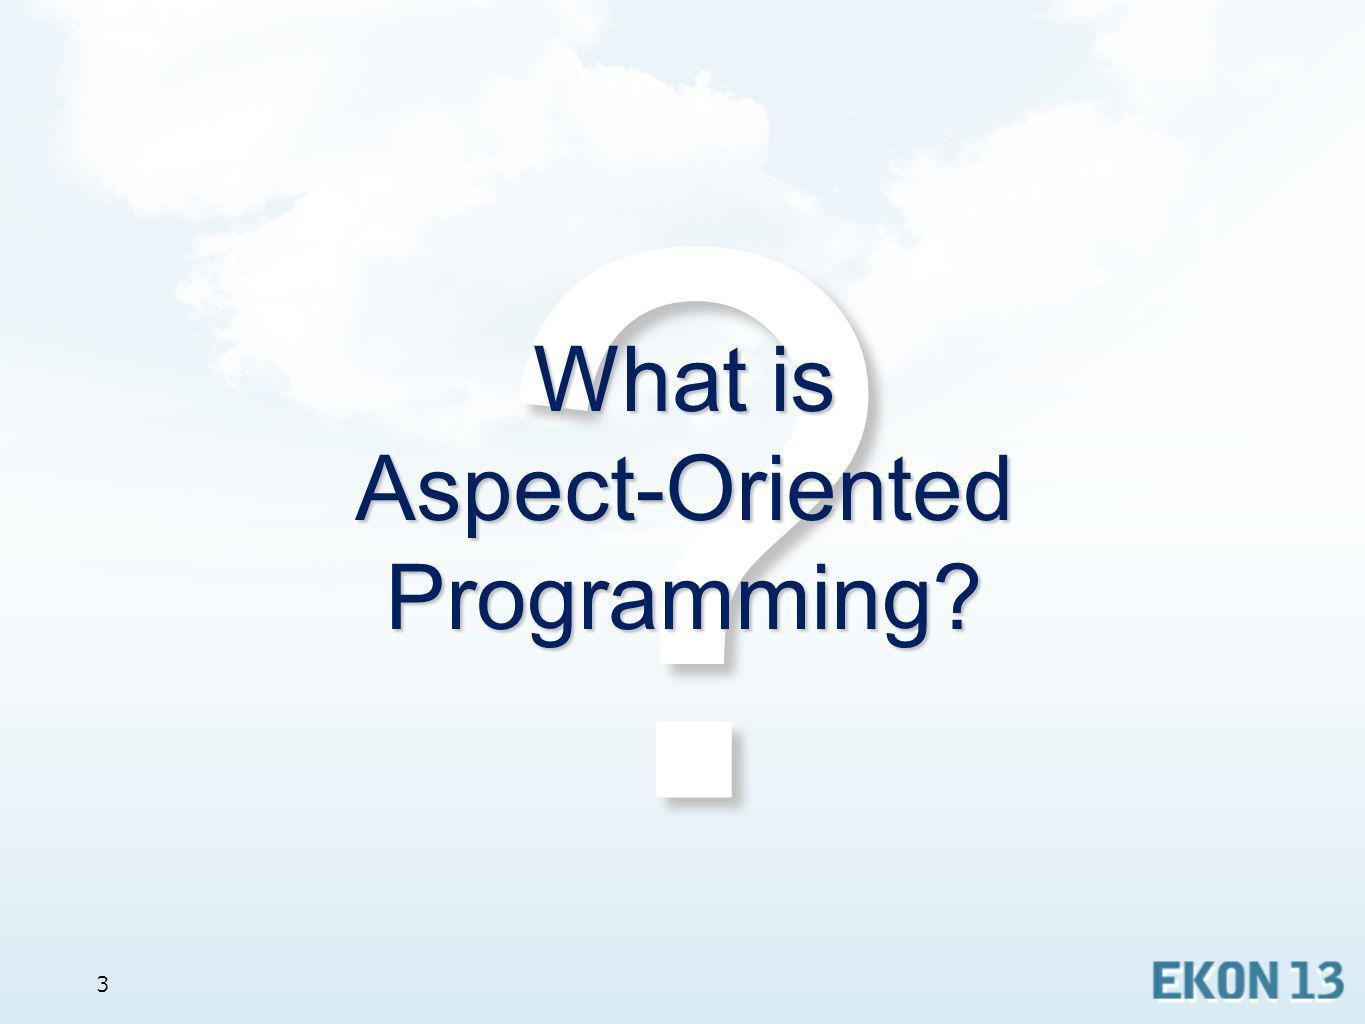 What is Aspect-Oriented Programming